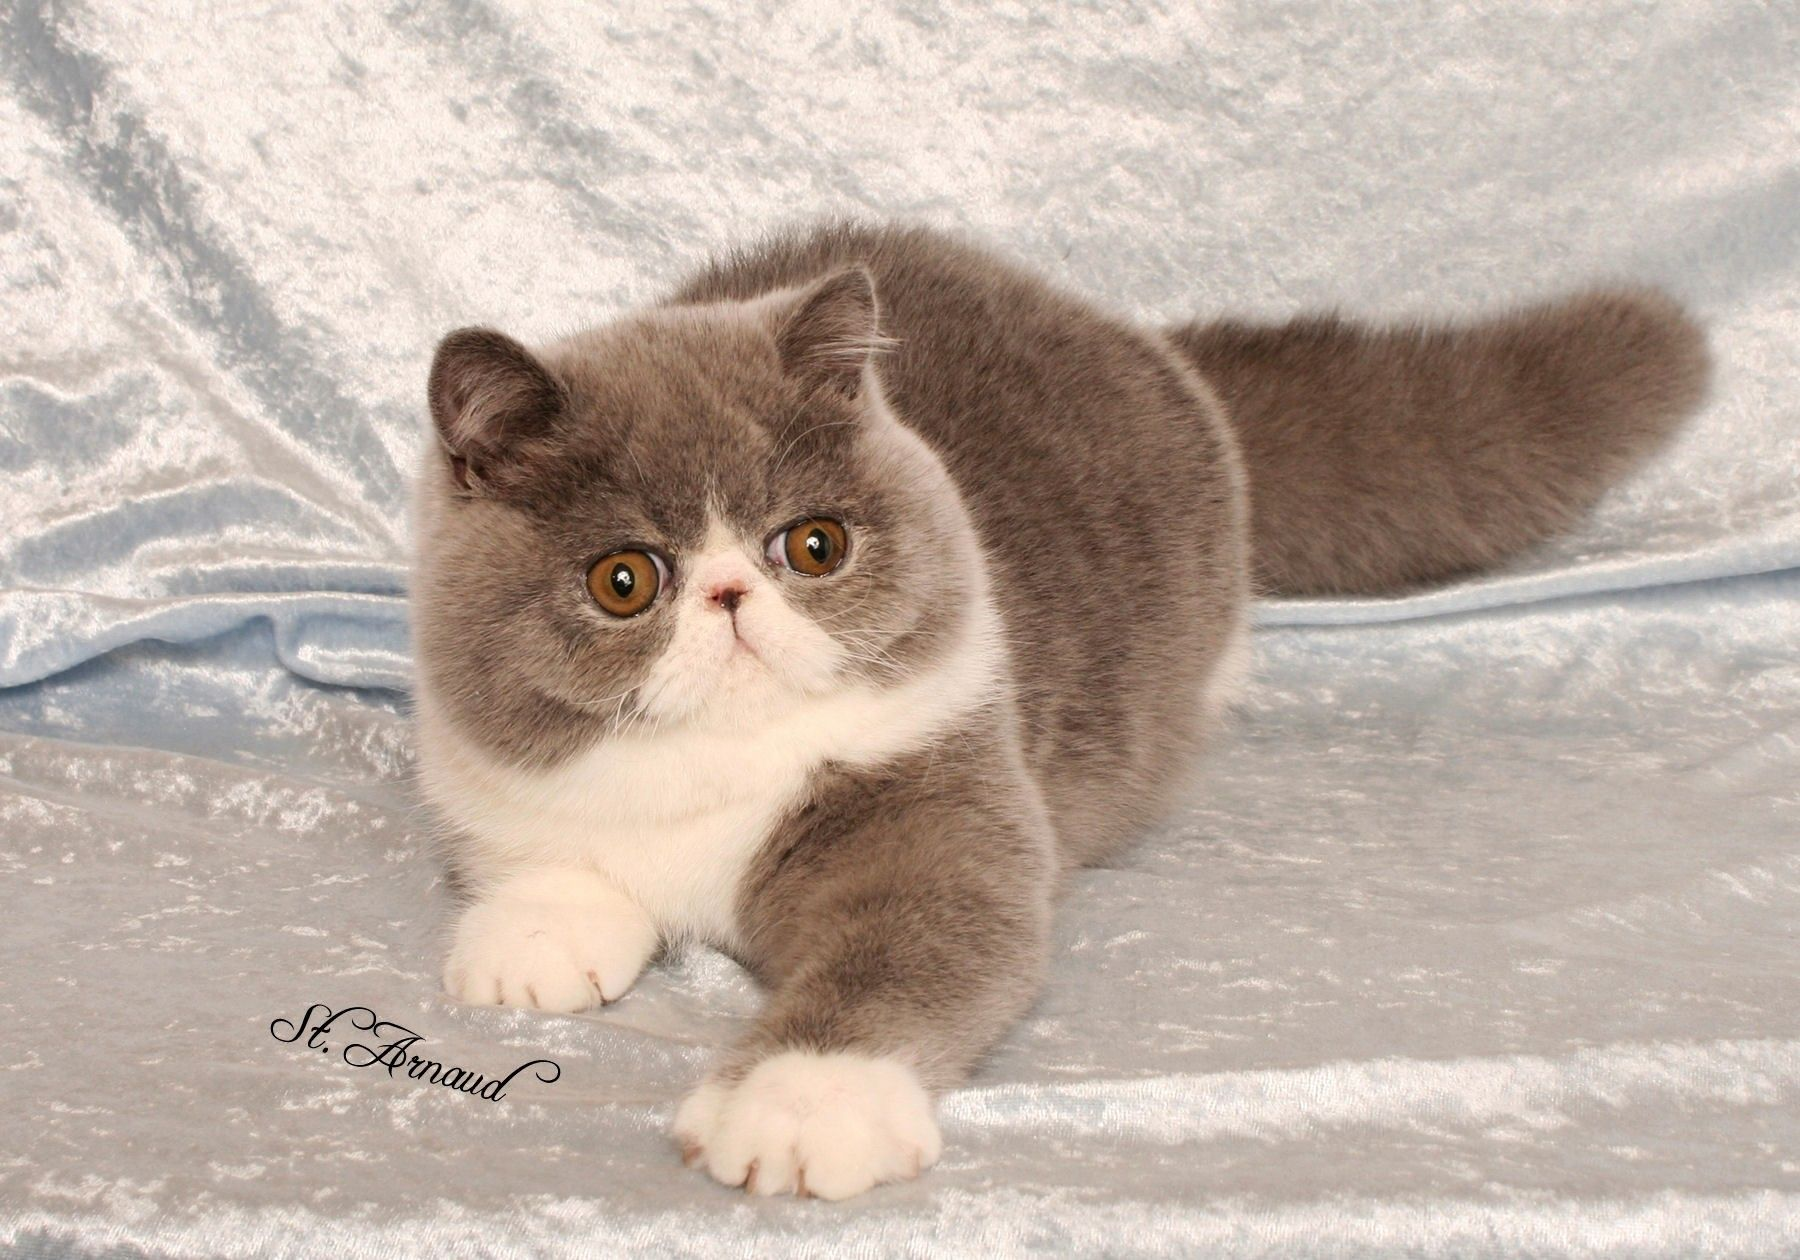 Exotic shorthair cats and Exotic shorthair kittens http